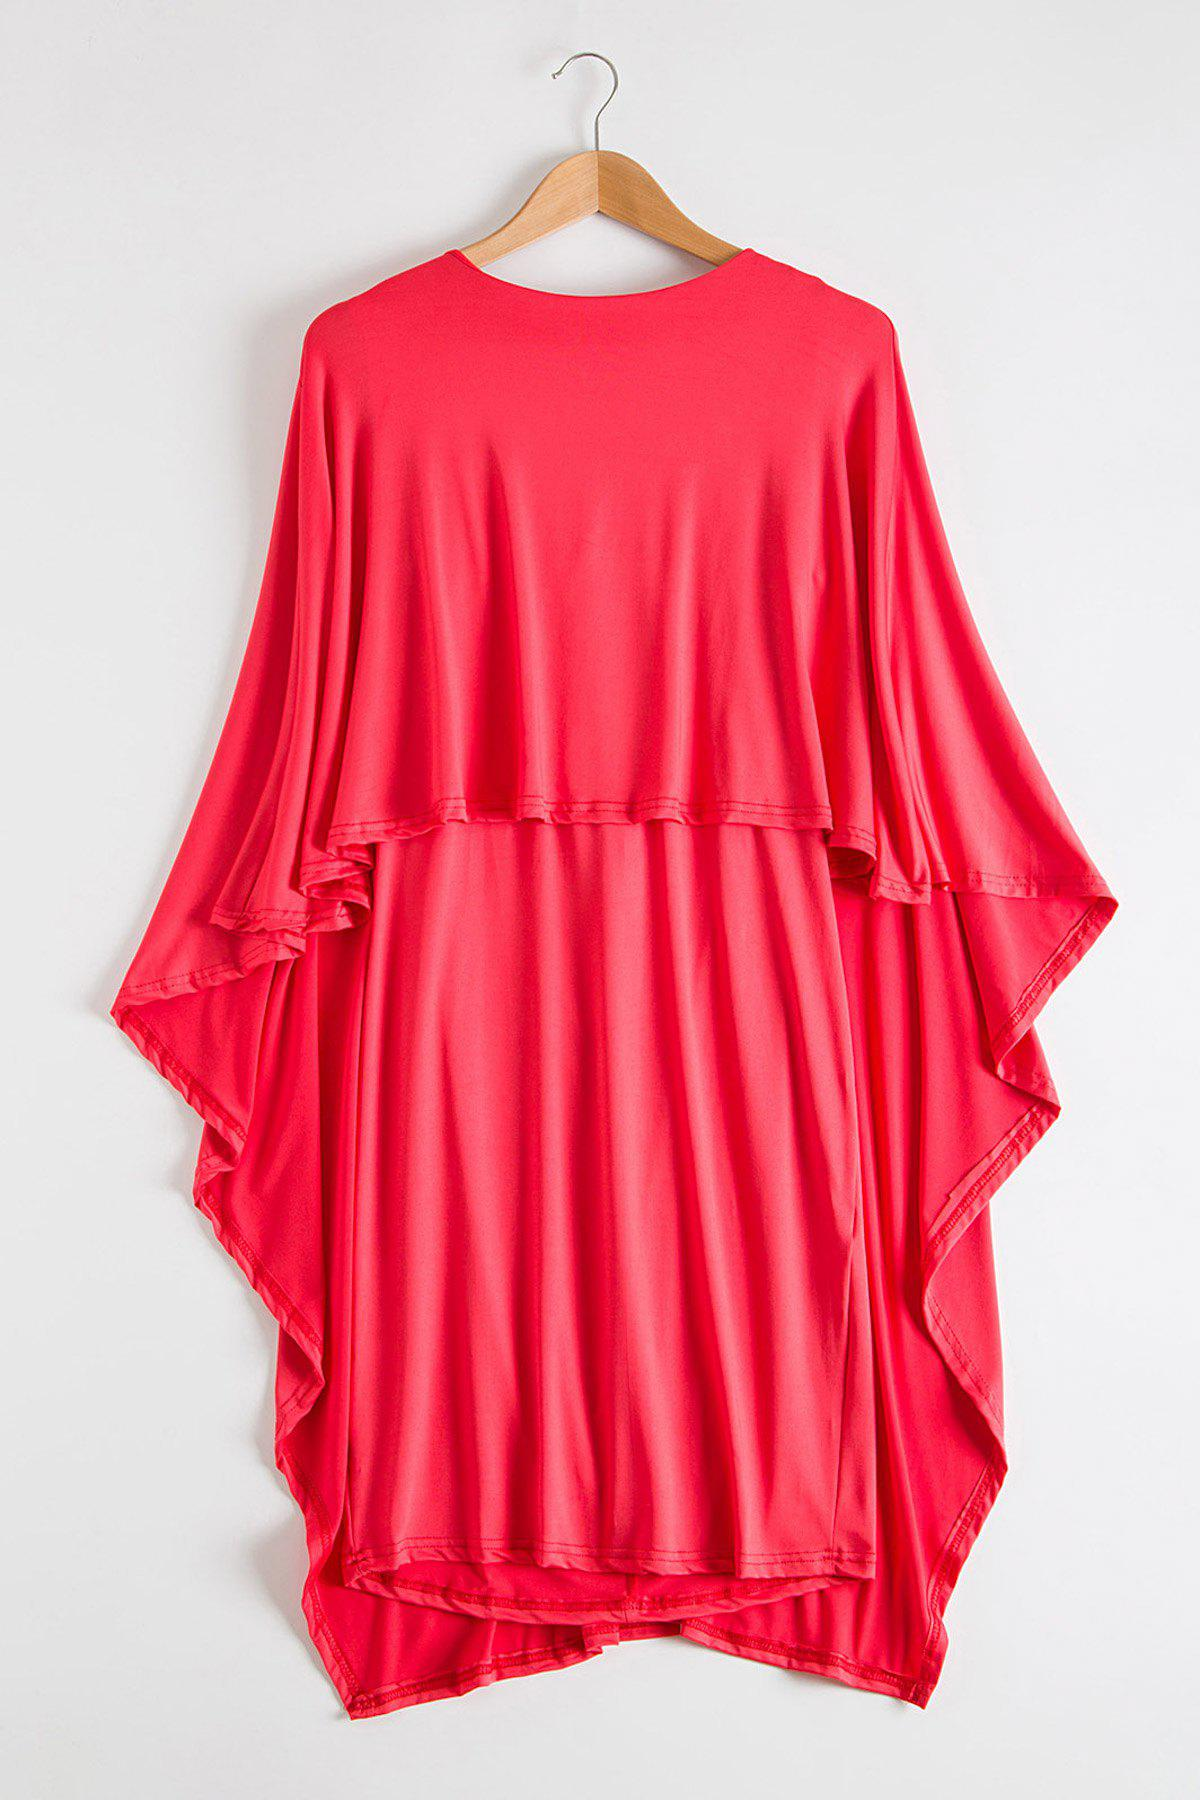 Attractive Bertha Collar Backless Solid Color Bodycon Cape Dress For Women - WATERMELON RED XL